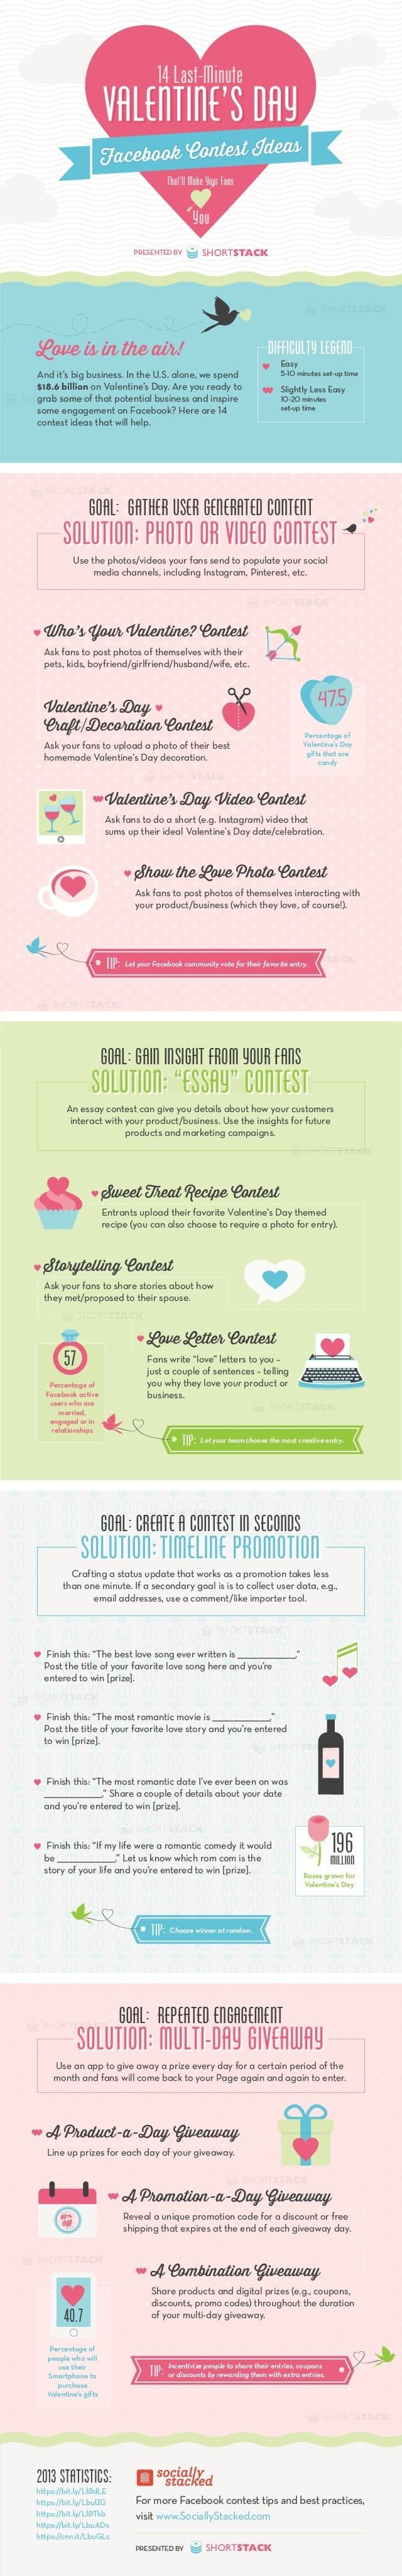 Four visual content marketing Valentines Day campaigns using Facebook, Instagram, Pinterest, Snapchat and Twitter